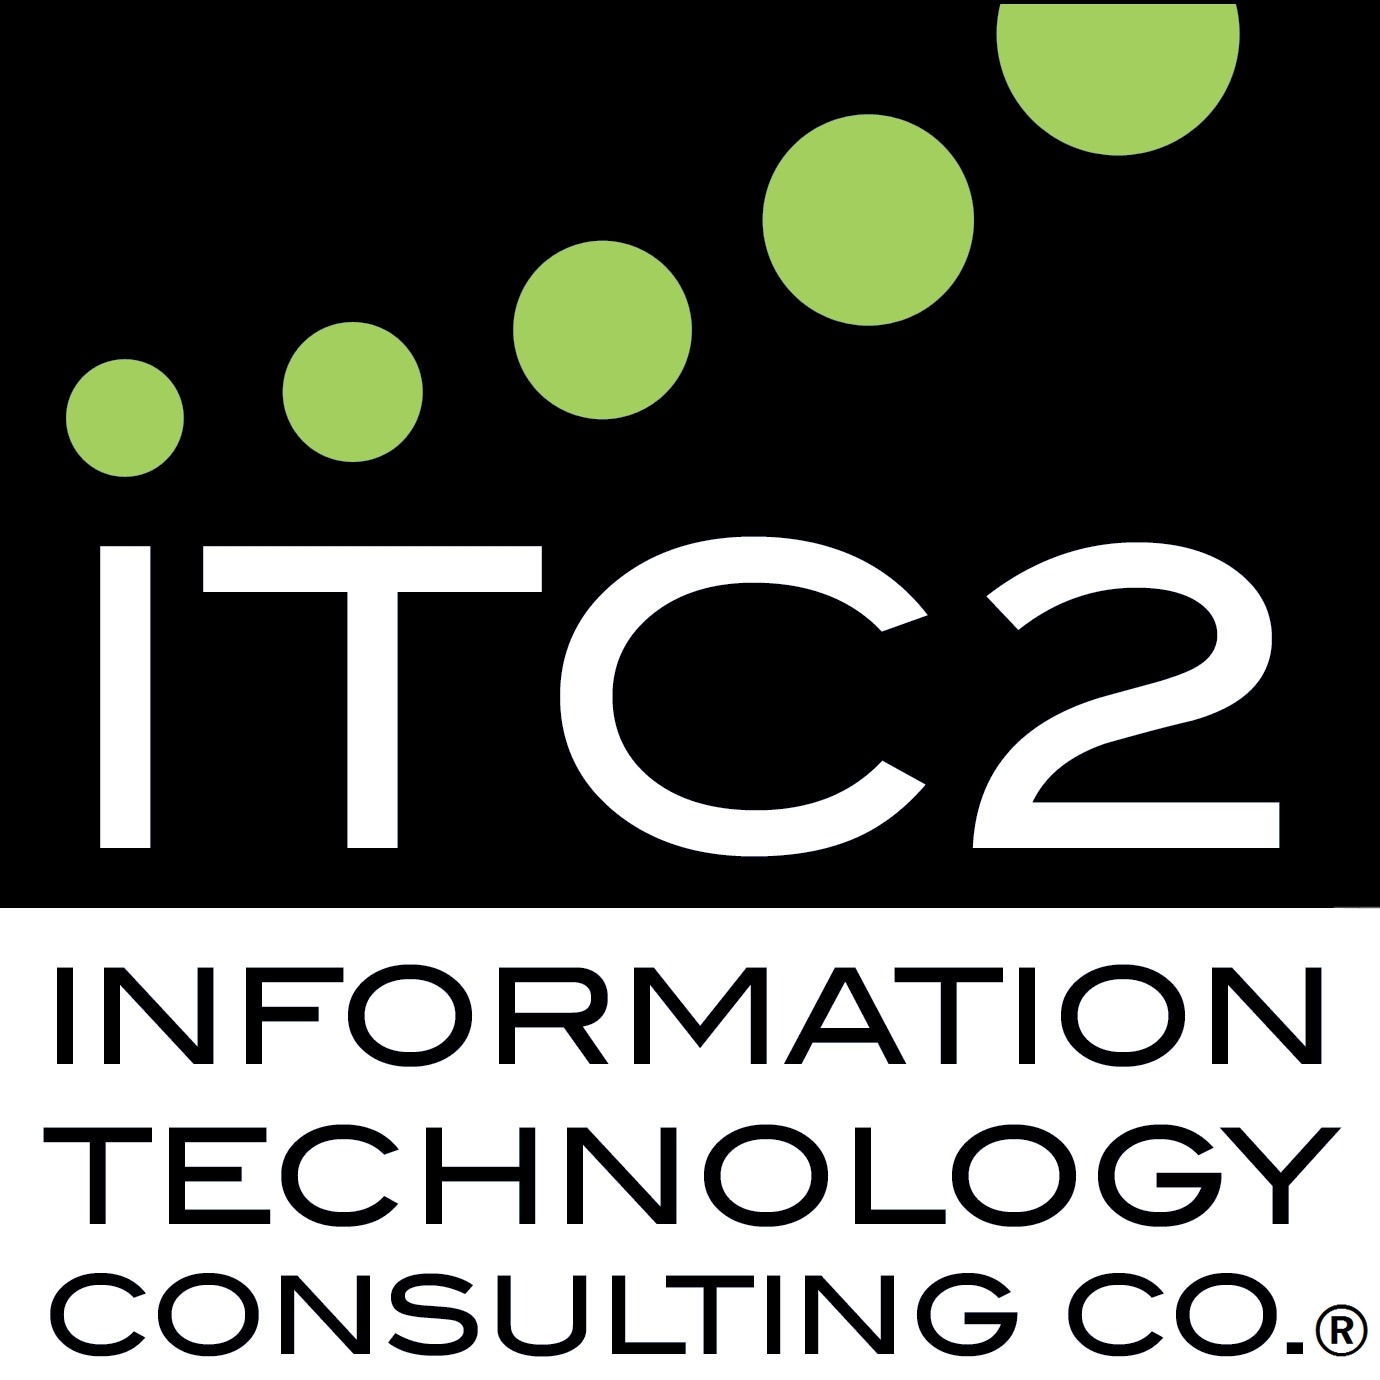 what is an itc2 file